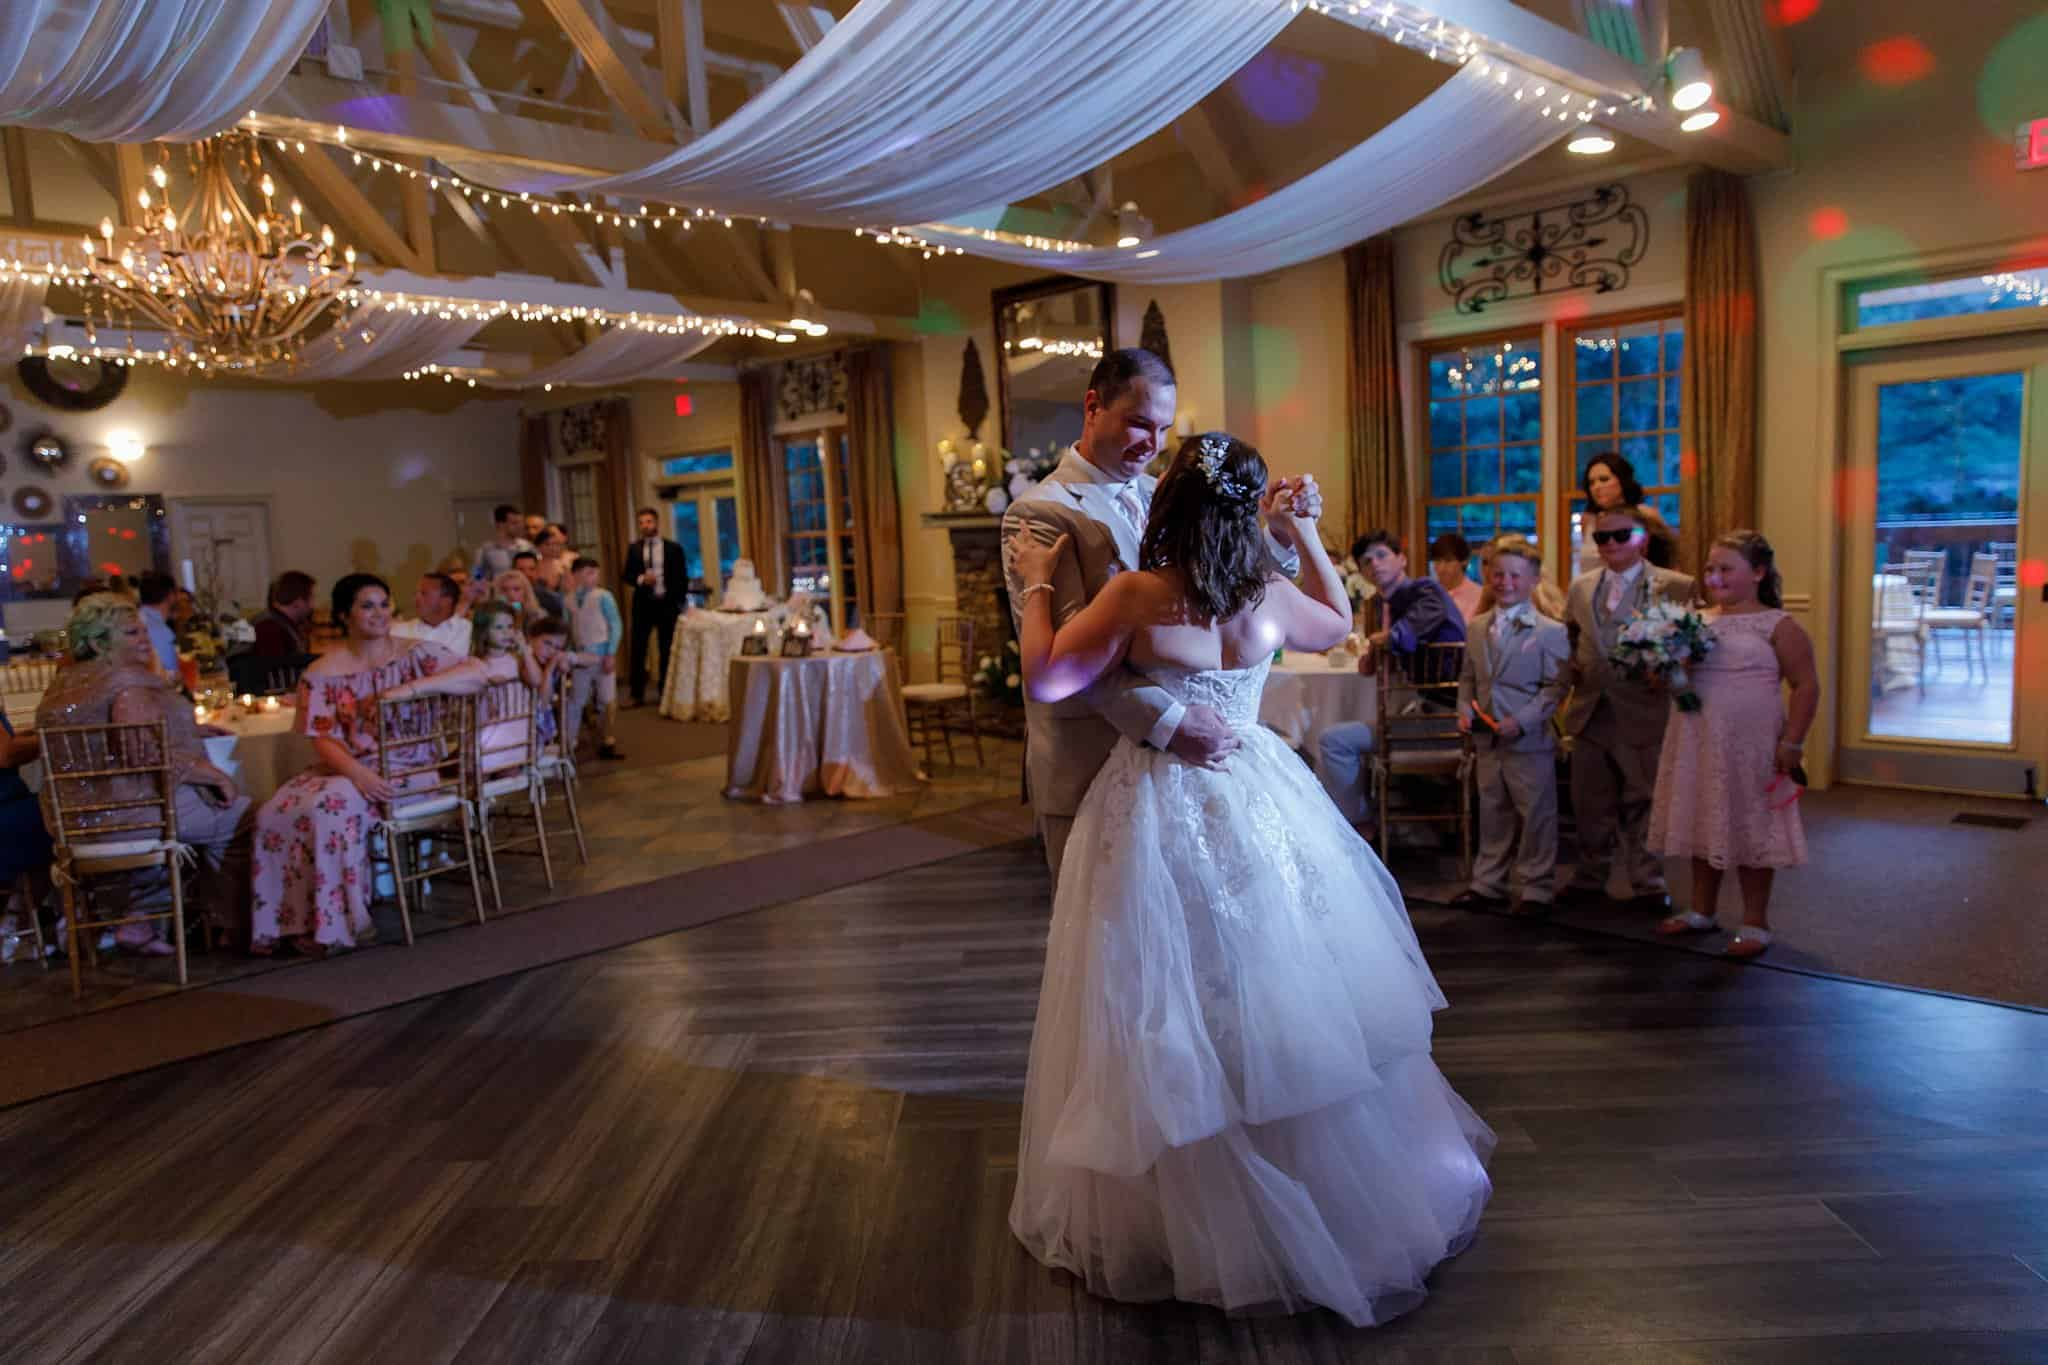 Bride and Groom 1st Dance on Dancefloor at Wedding Reception